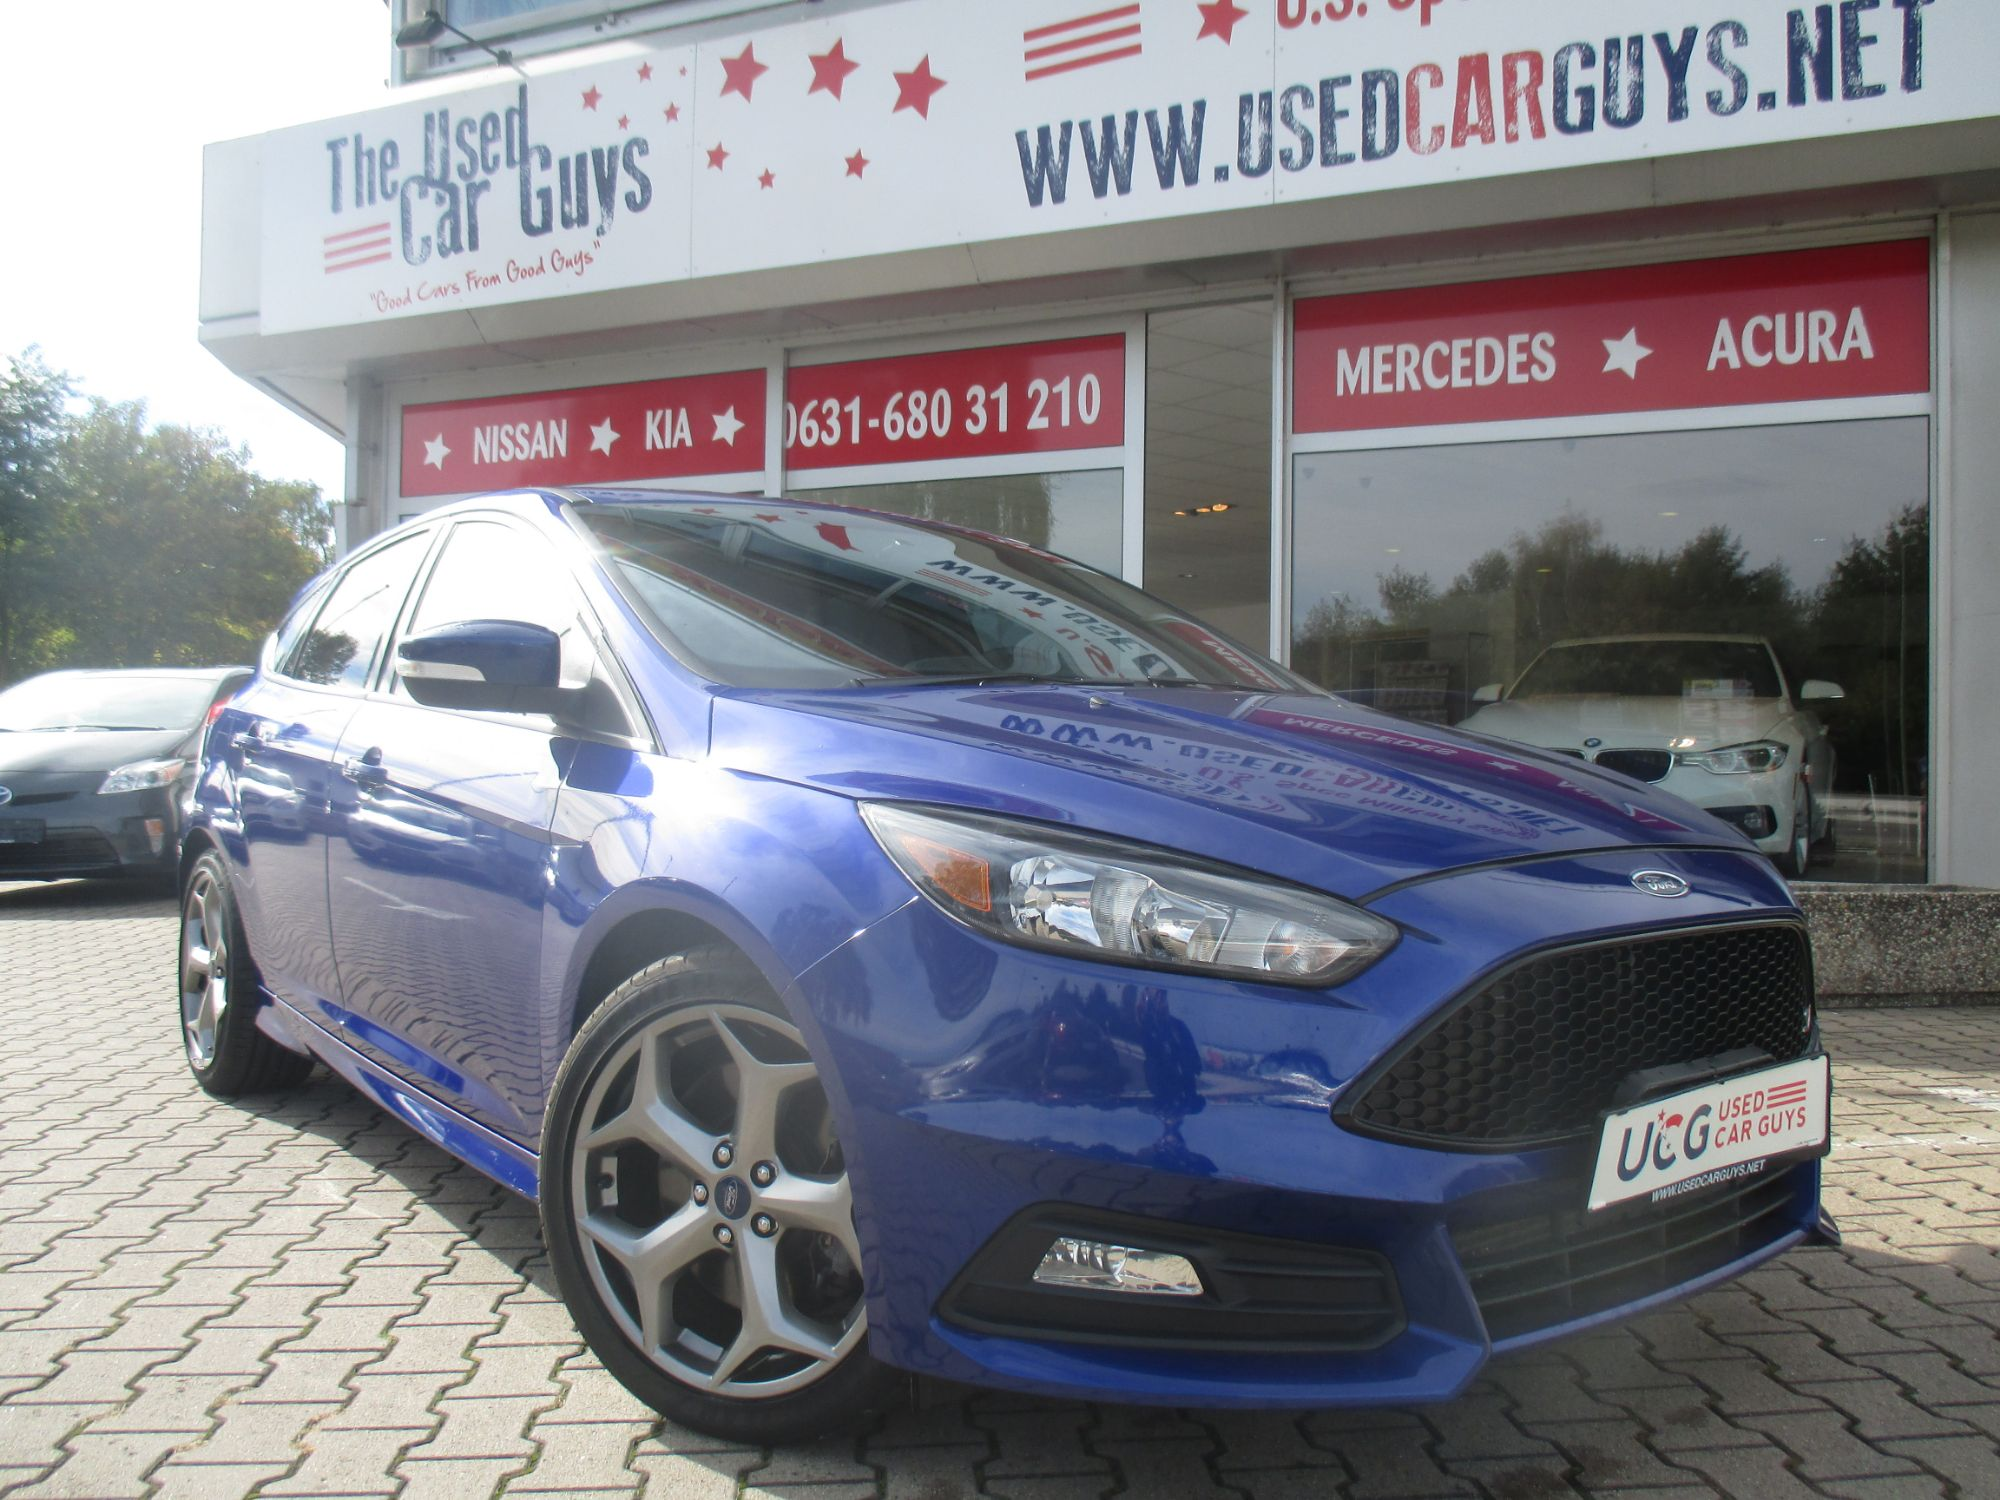 Ford Focus ST The Used Car GuysThe Used Car Guys - Good guys used cars